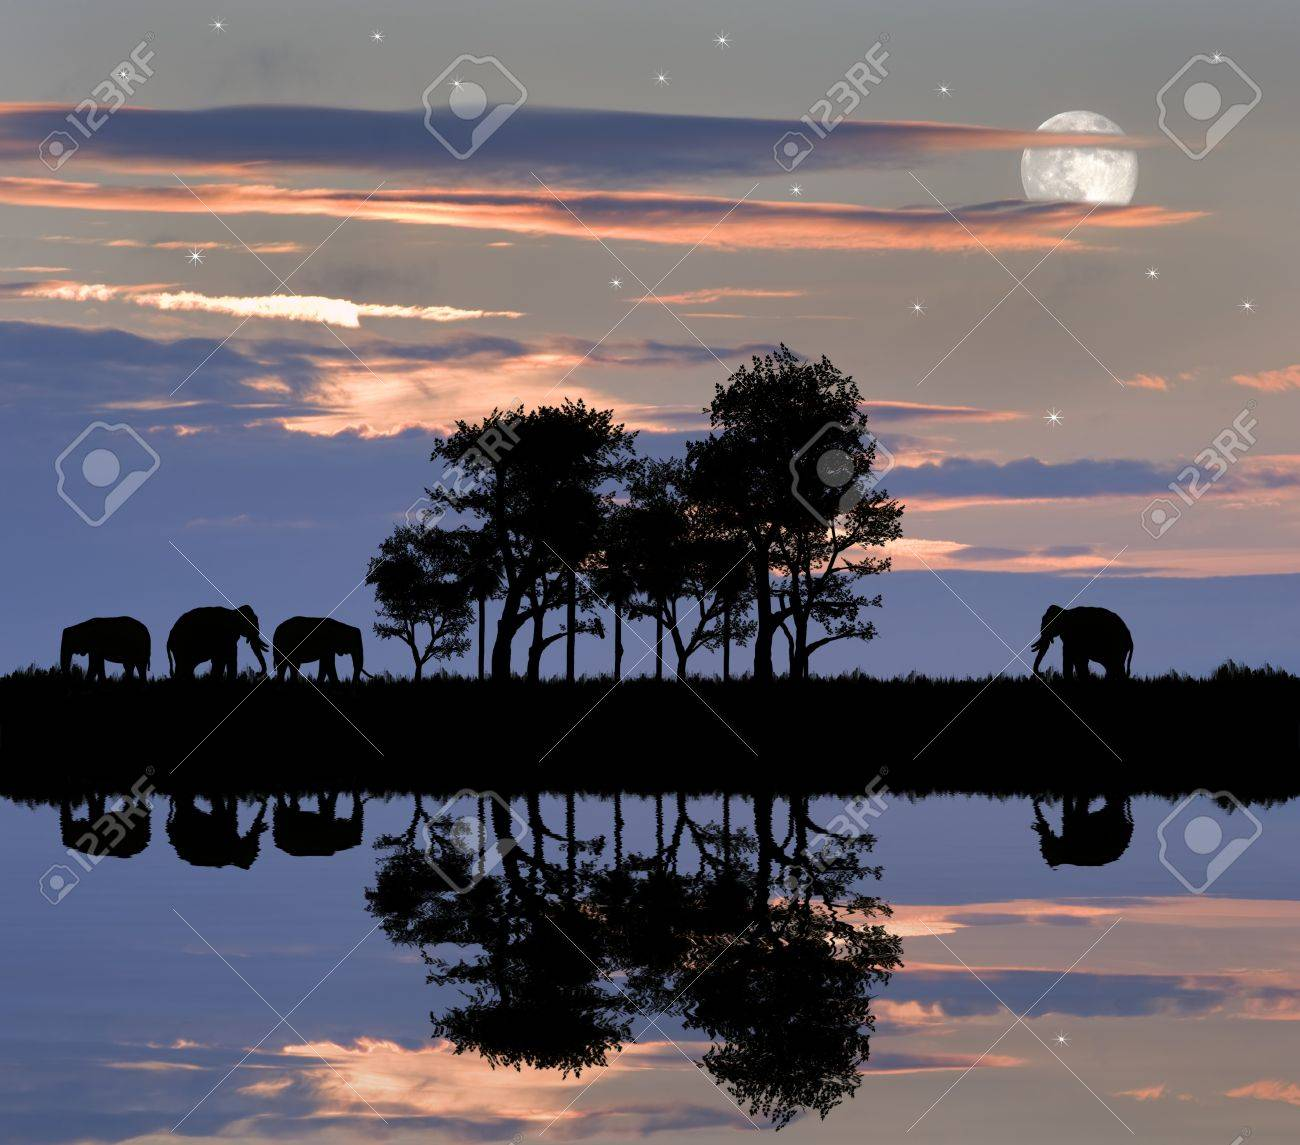 Silhouette of animals in Africa theme setting with beautiful colorful sunset Stock Photo - 8805265